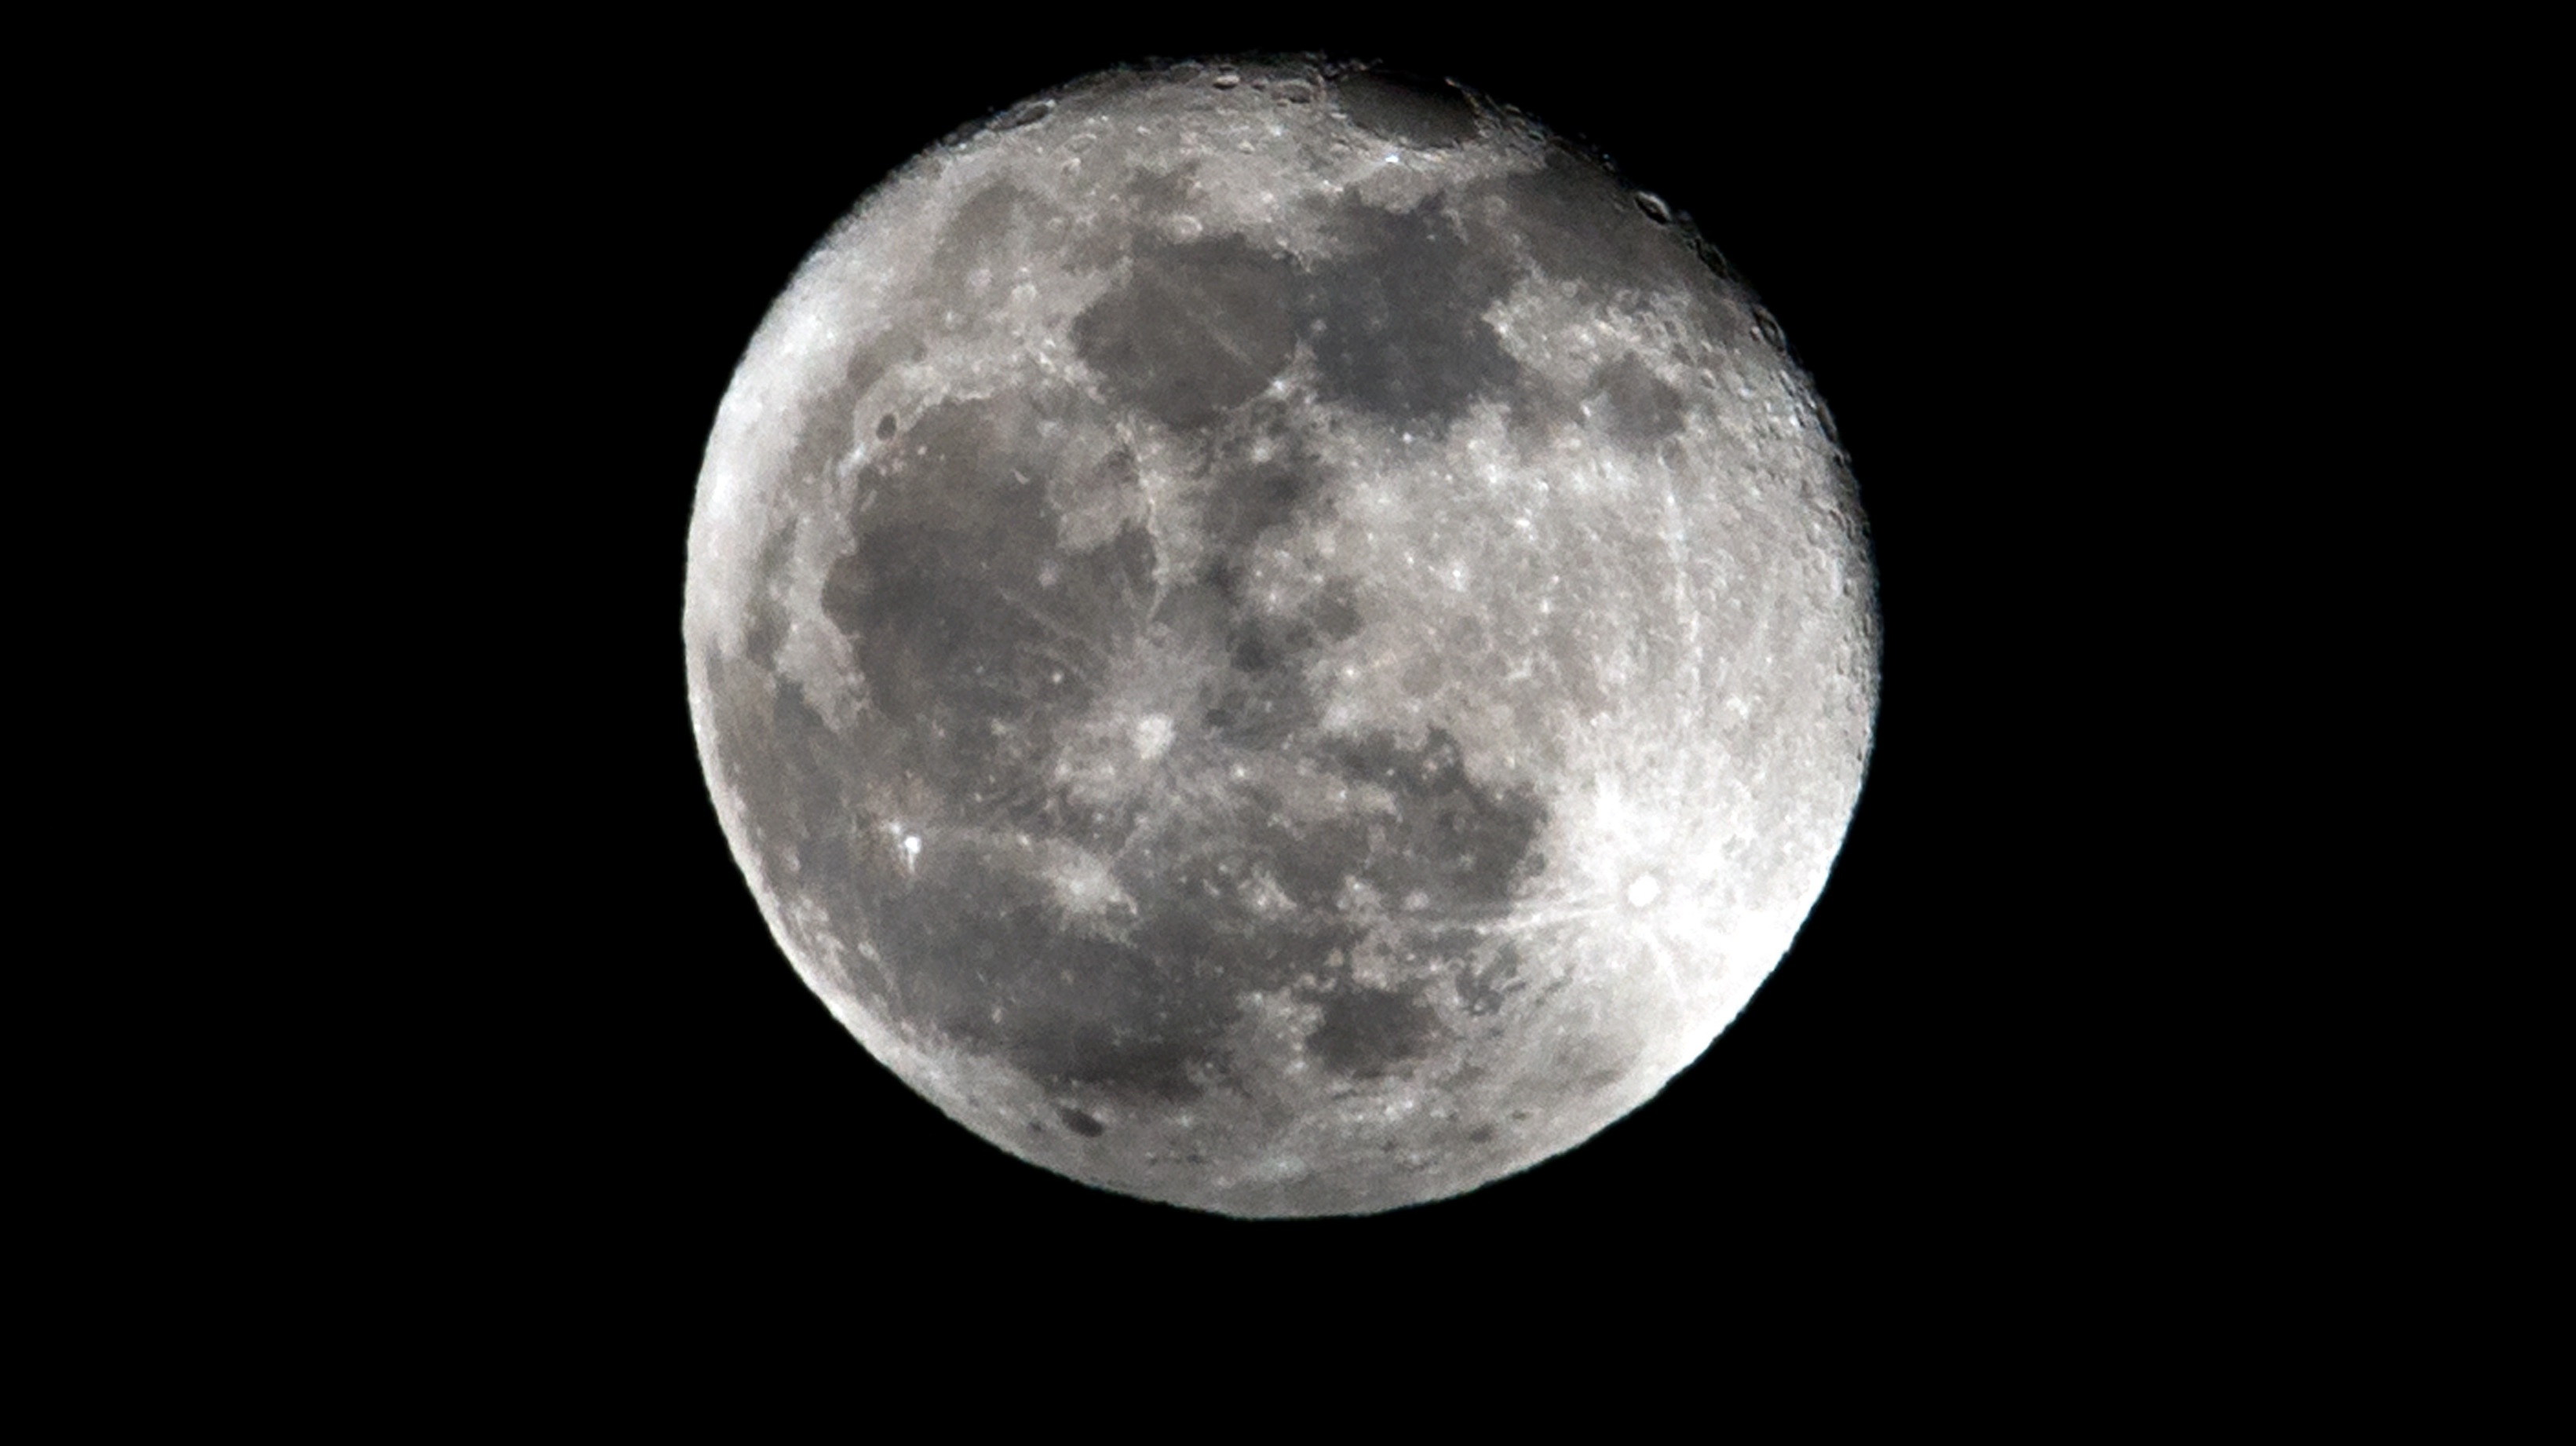 Meteorite Impact On Moon Sets Record As Brightest Ever Seen